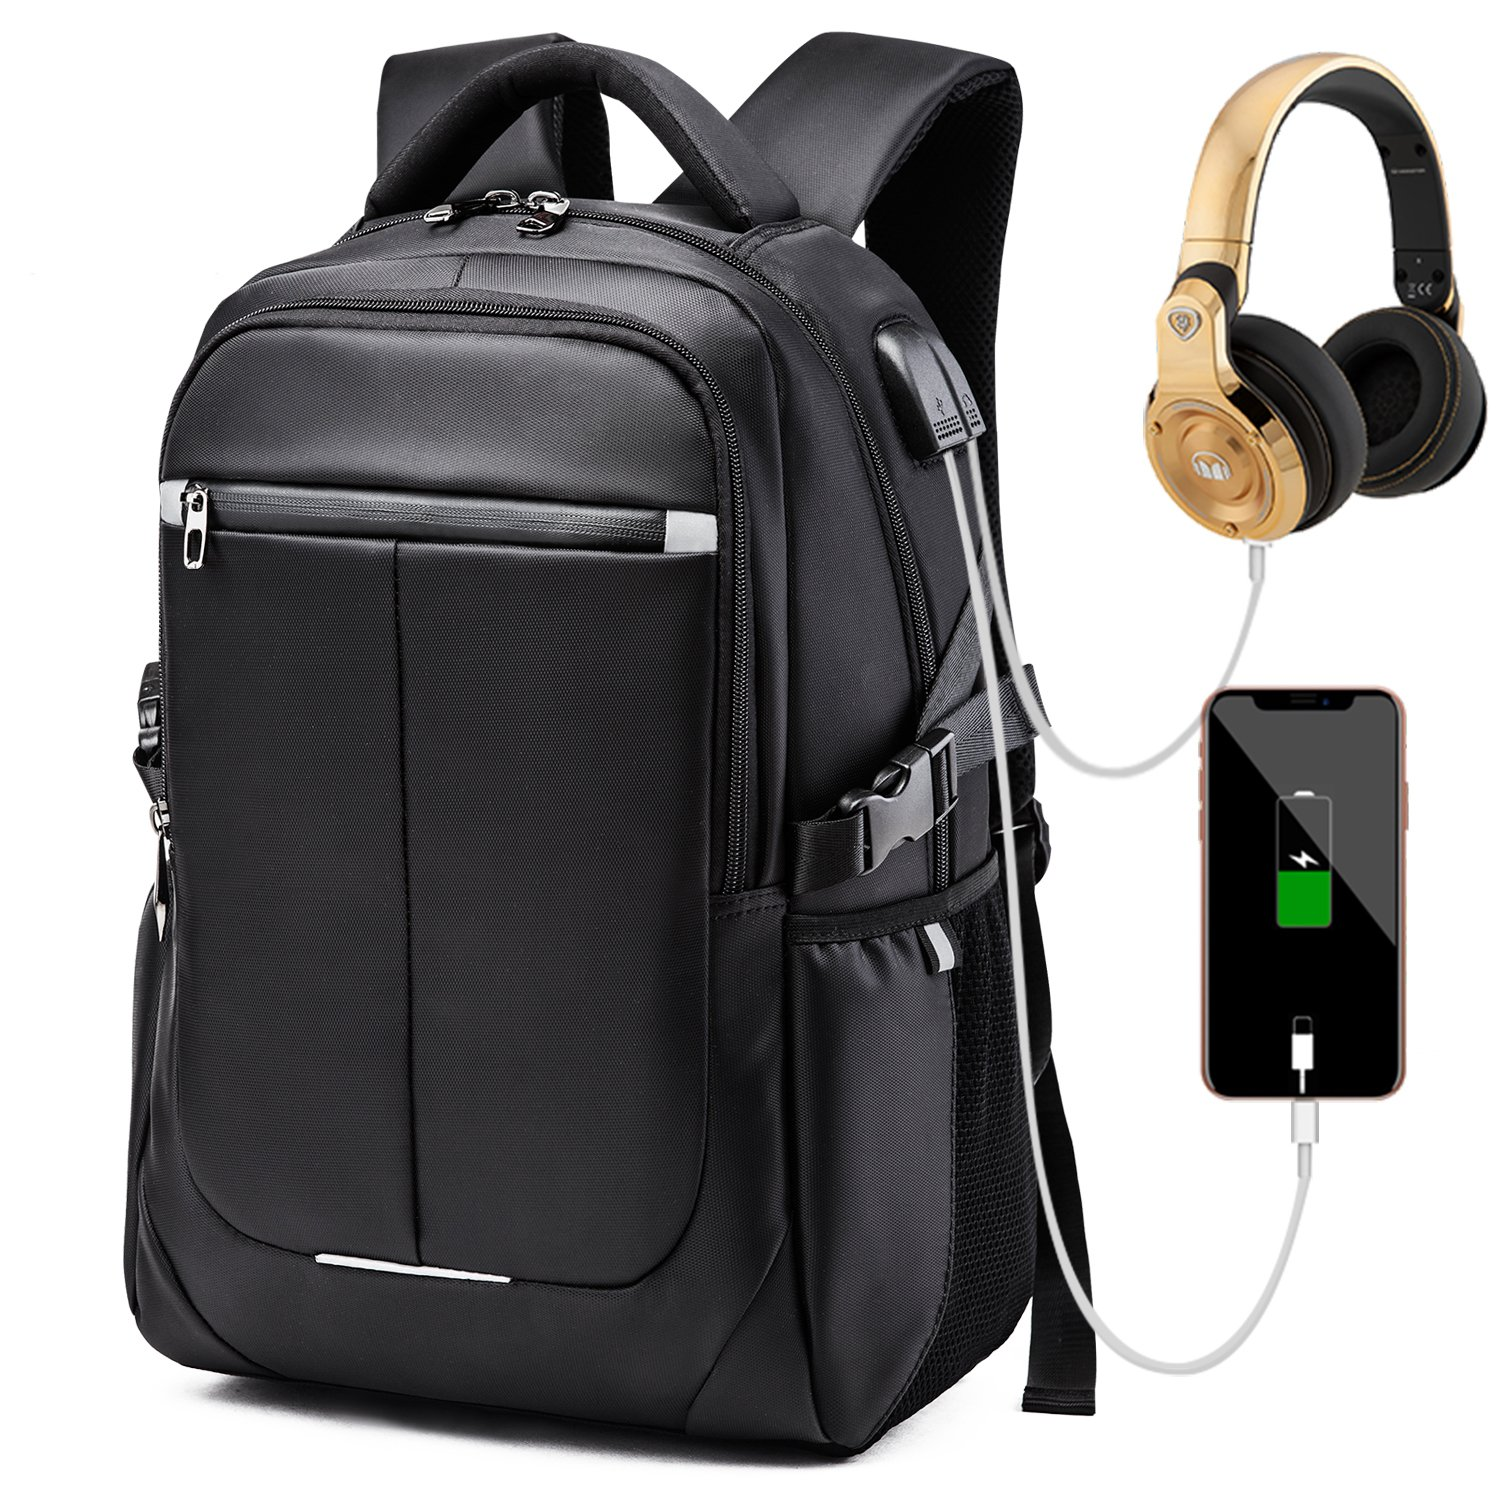 Laptop Backpack, Business Travel Computer Bag Anti Theft Waterproof Backpack with USB Charging Port & Headphone Interface for College School Women and Men Fits for 15.6 Inch Laptop-Black.